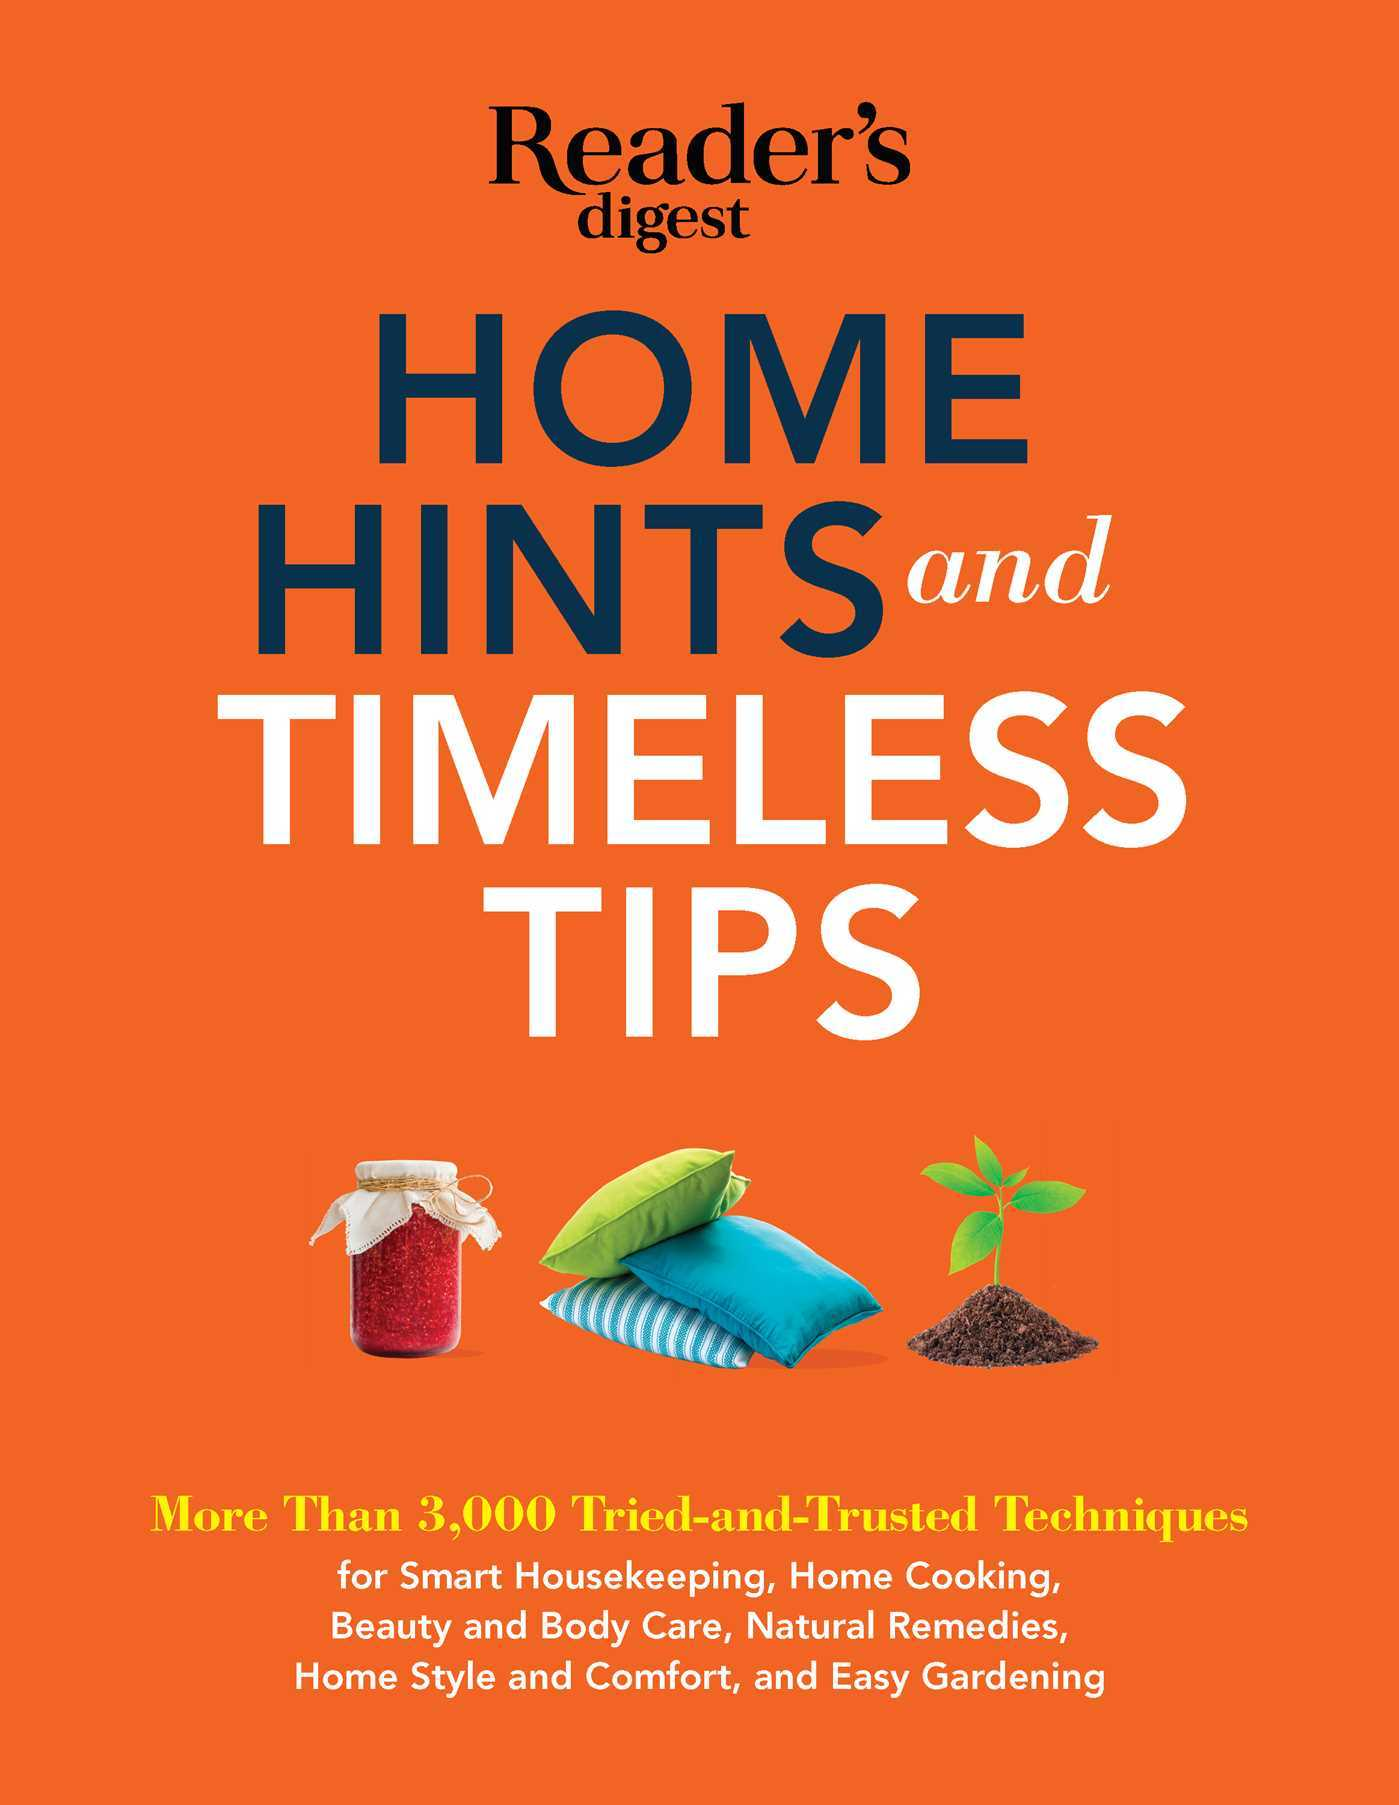 Home Hints and Timeless Tips: More than 3,000 Tried-and-Trusted Techniques for Smart Housekeeping, Home Cooking, Beauty and Body Care, Natural Remedies, Home Style and Comfort, and Easy Gardenin Editors of Readers Digest